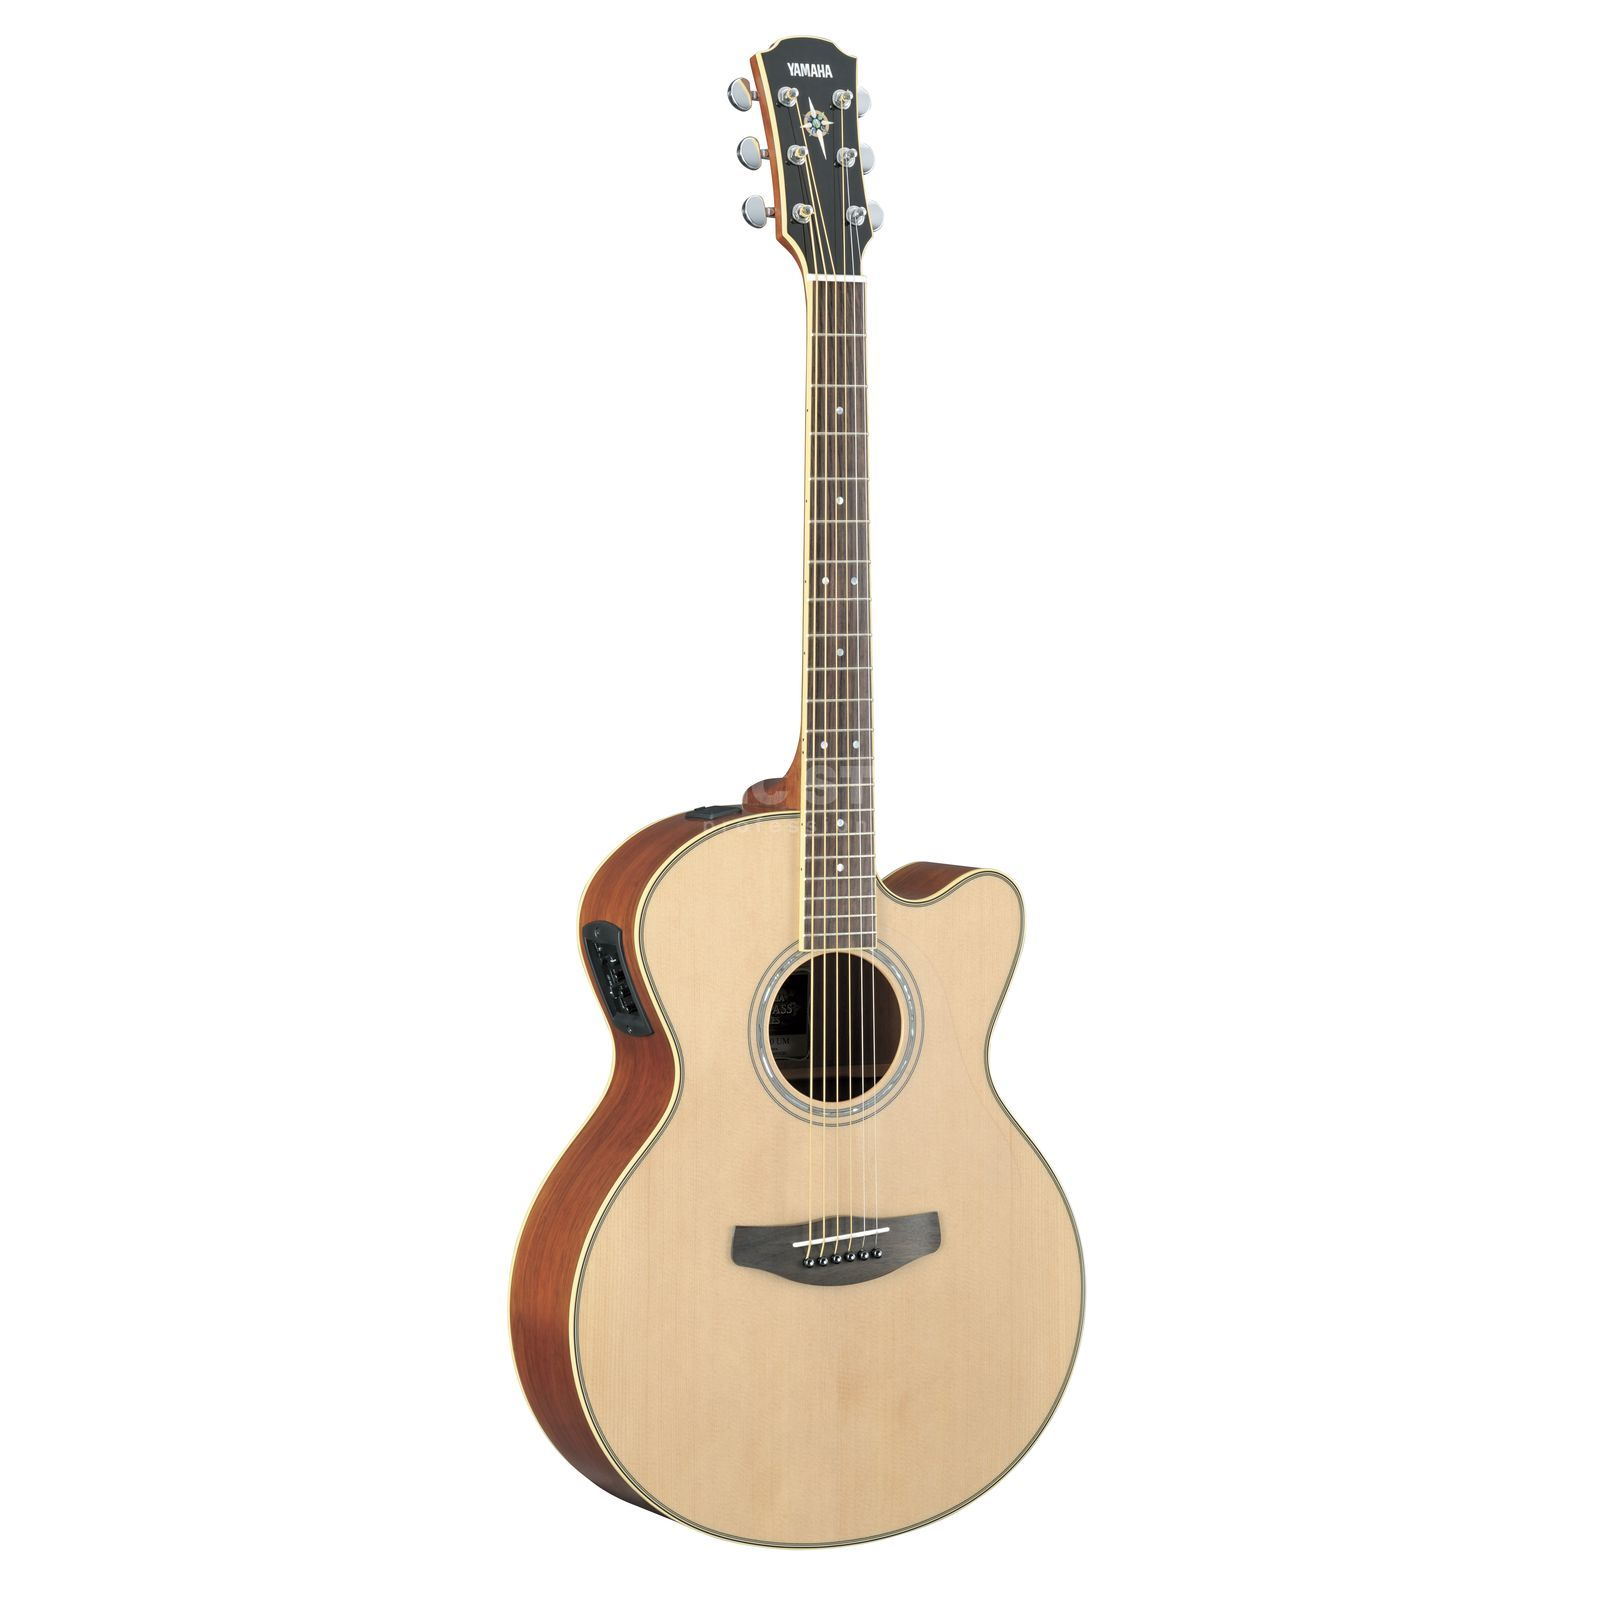 Yamaha CPX700II Electro Acoustic Guit ar, Natural   Produktbillede